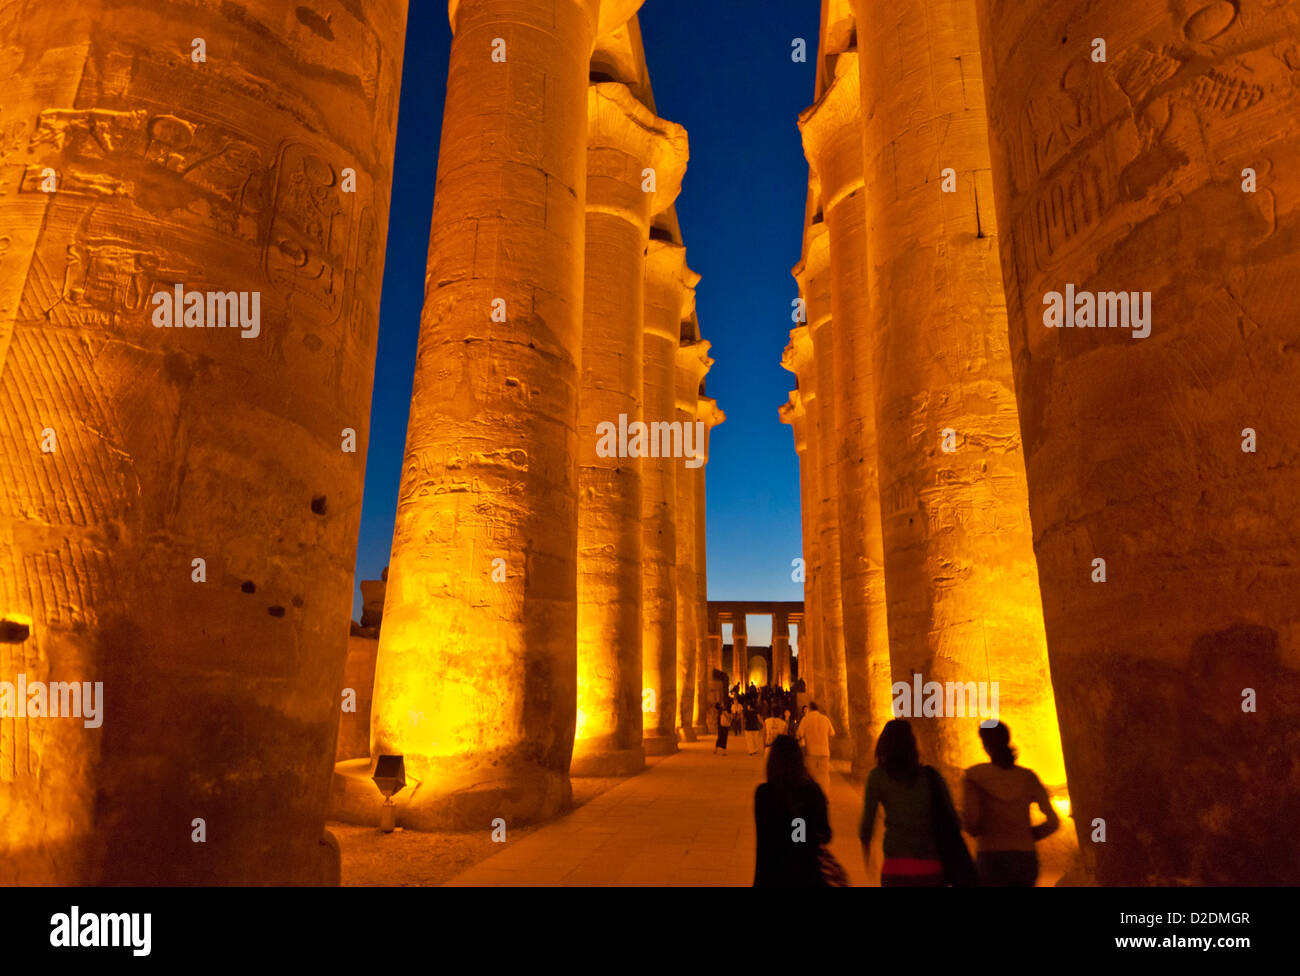 Tourists walking among the Floodlit columns of the court of Amenhotep III  Temple of Luxor at sunset Luxor Egypt - Stock Image